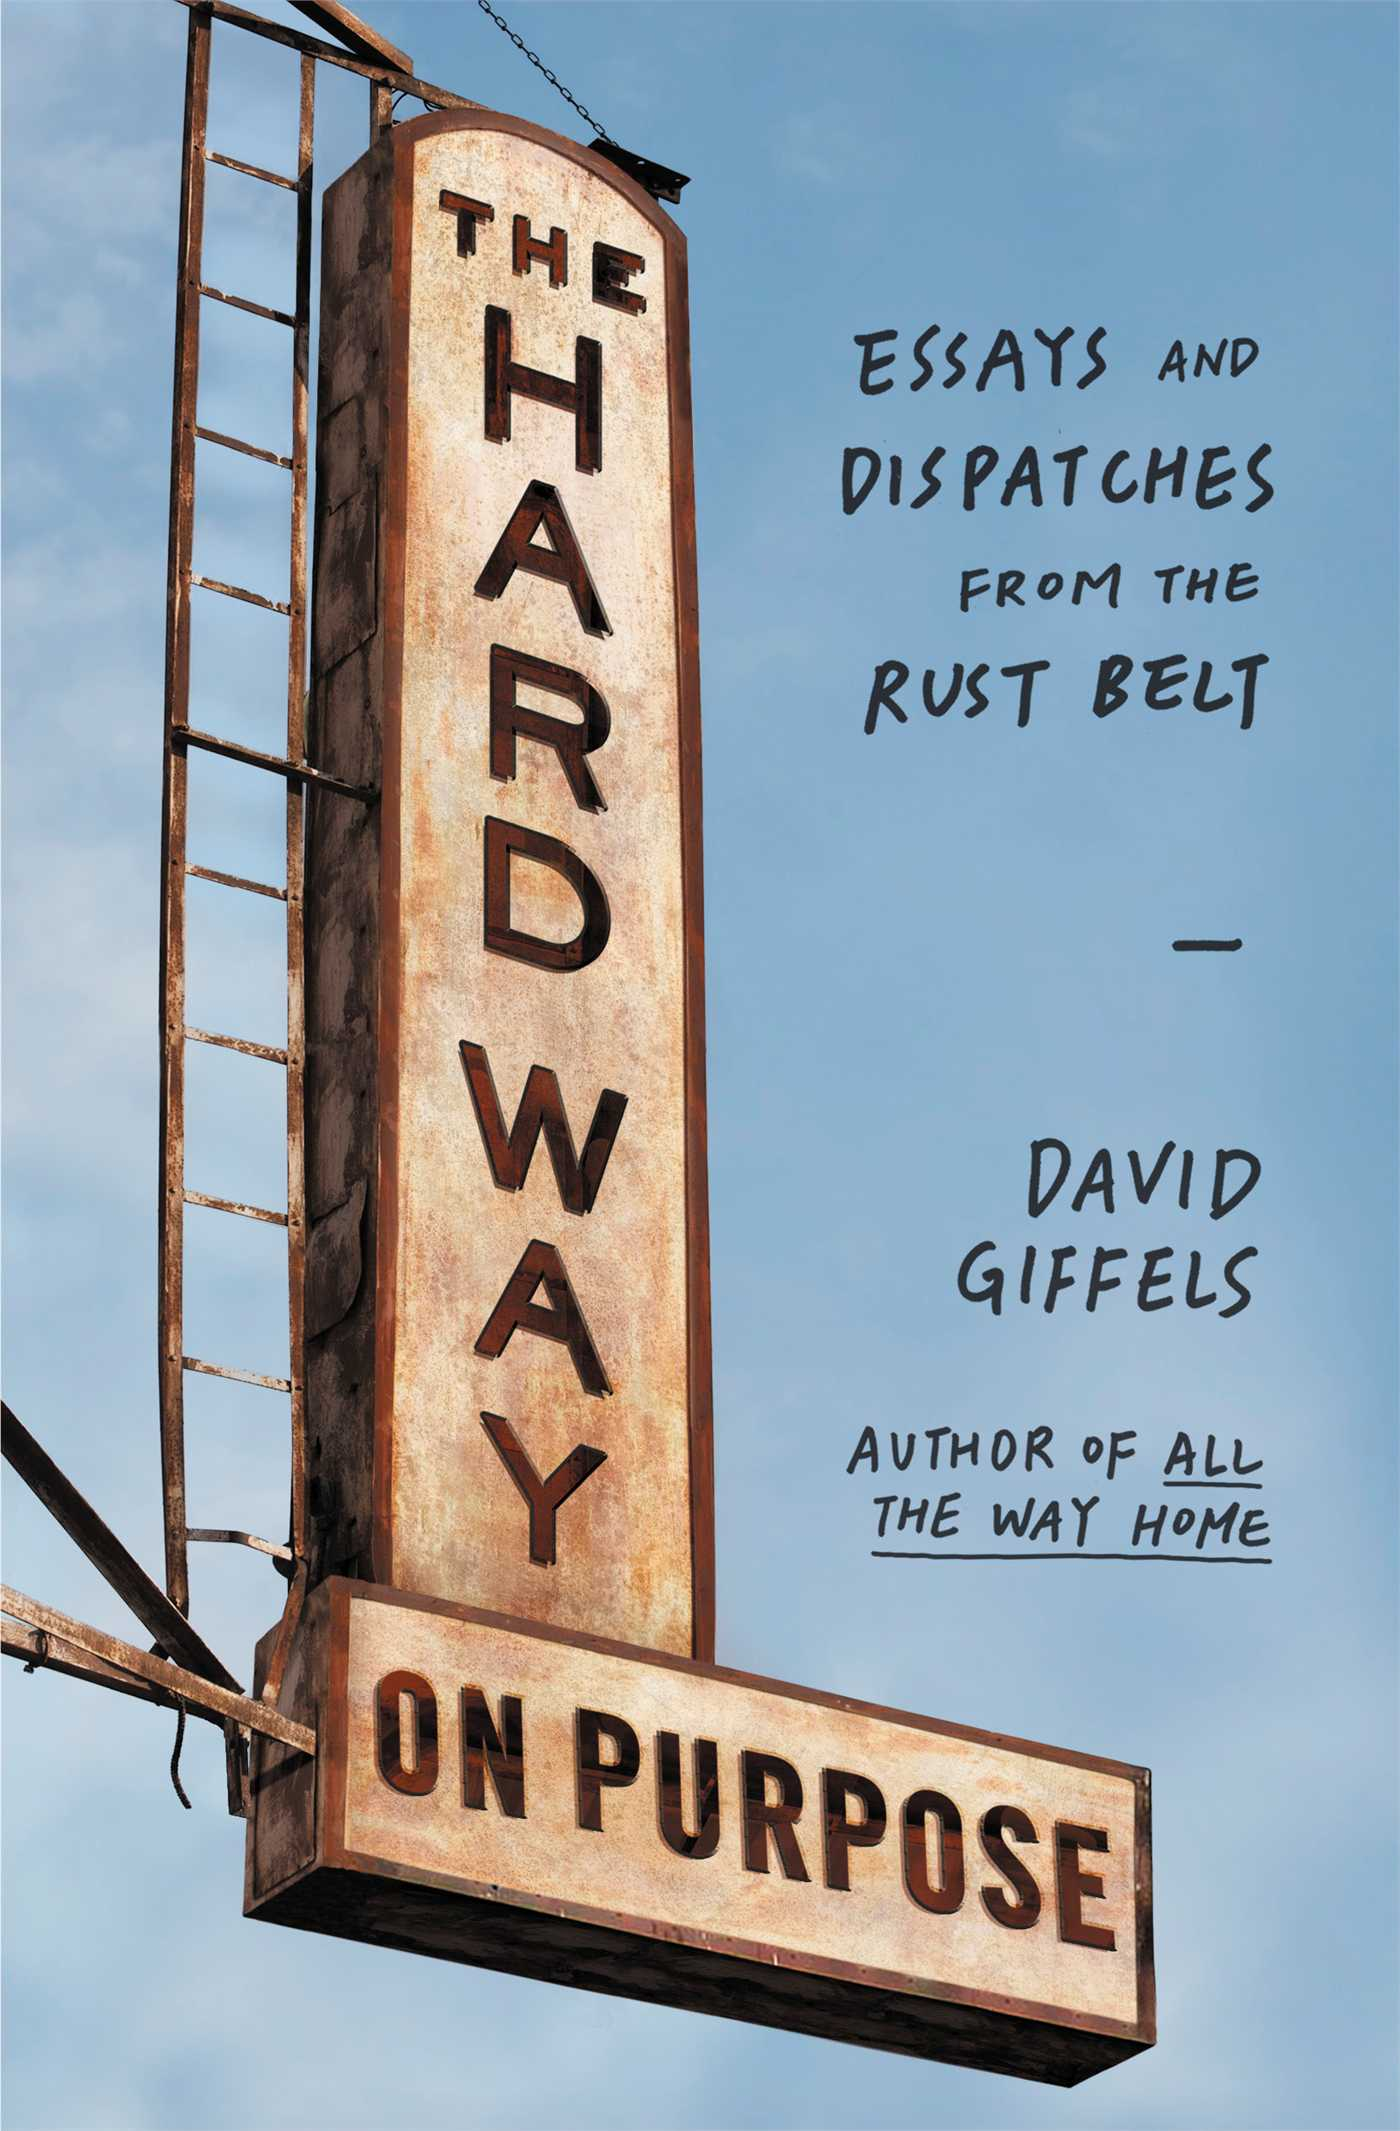 the hard way on purpose book by david giffels official essays and dispatches from the rust belt